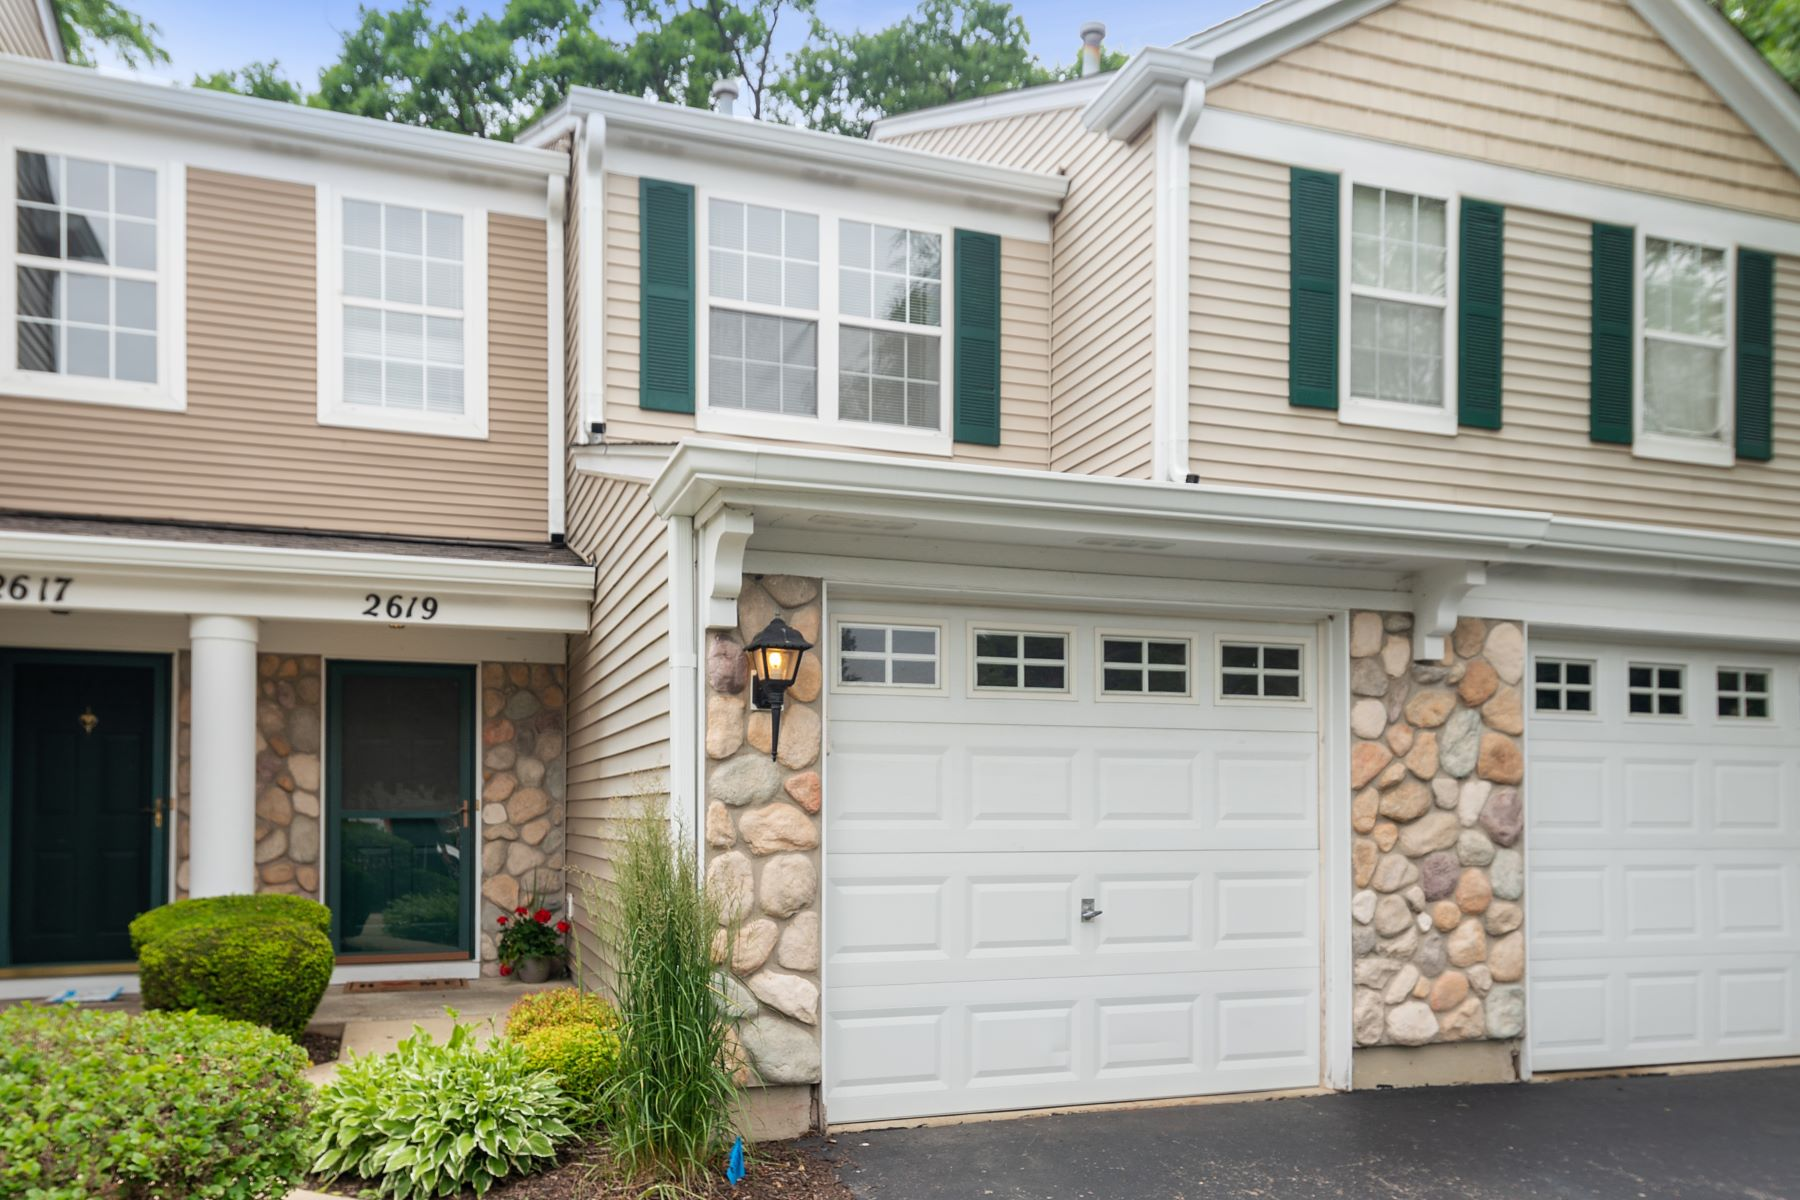 townhouses for Active at Gleaming Plainfield Townhome 2619 Oak Tree Lane Plainfield, Illinois 60586 United States